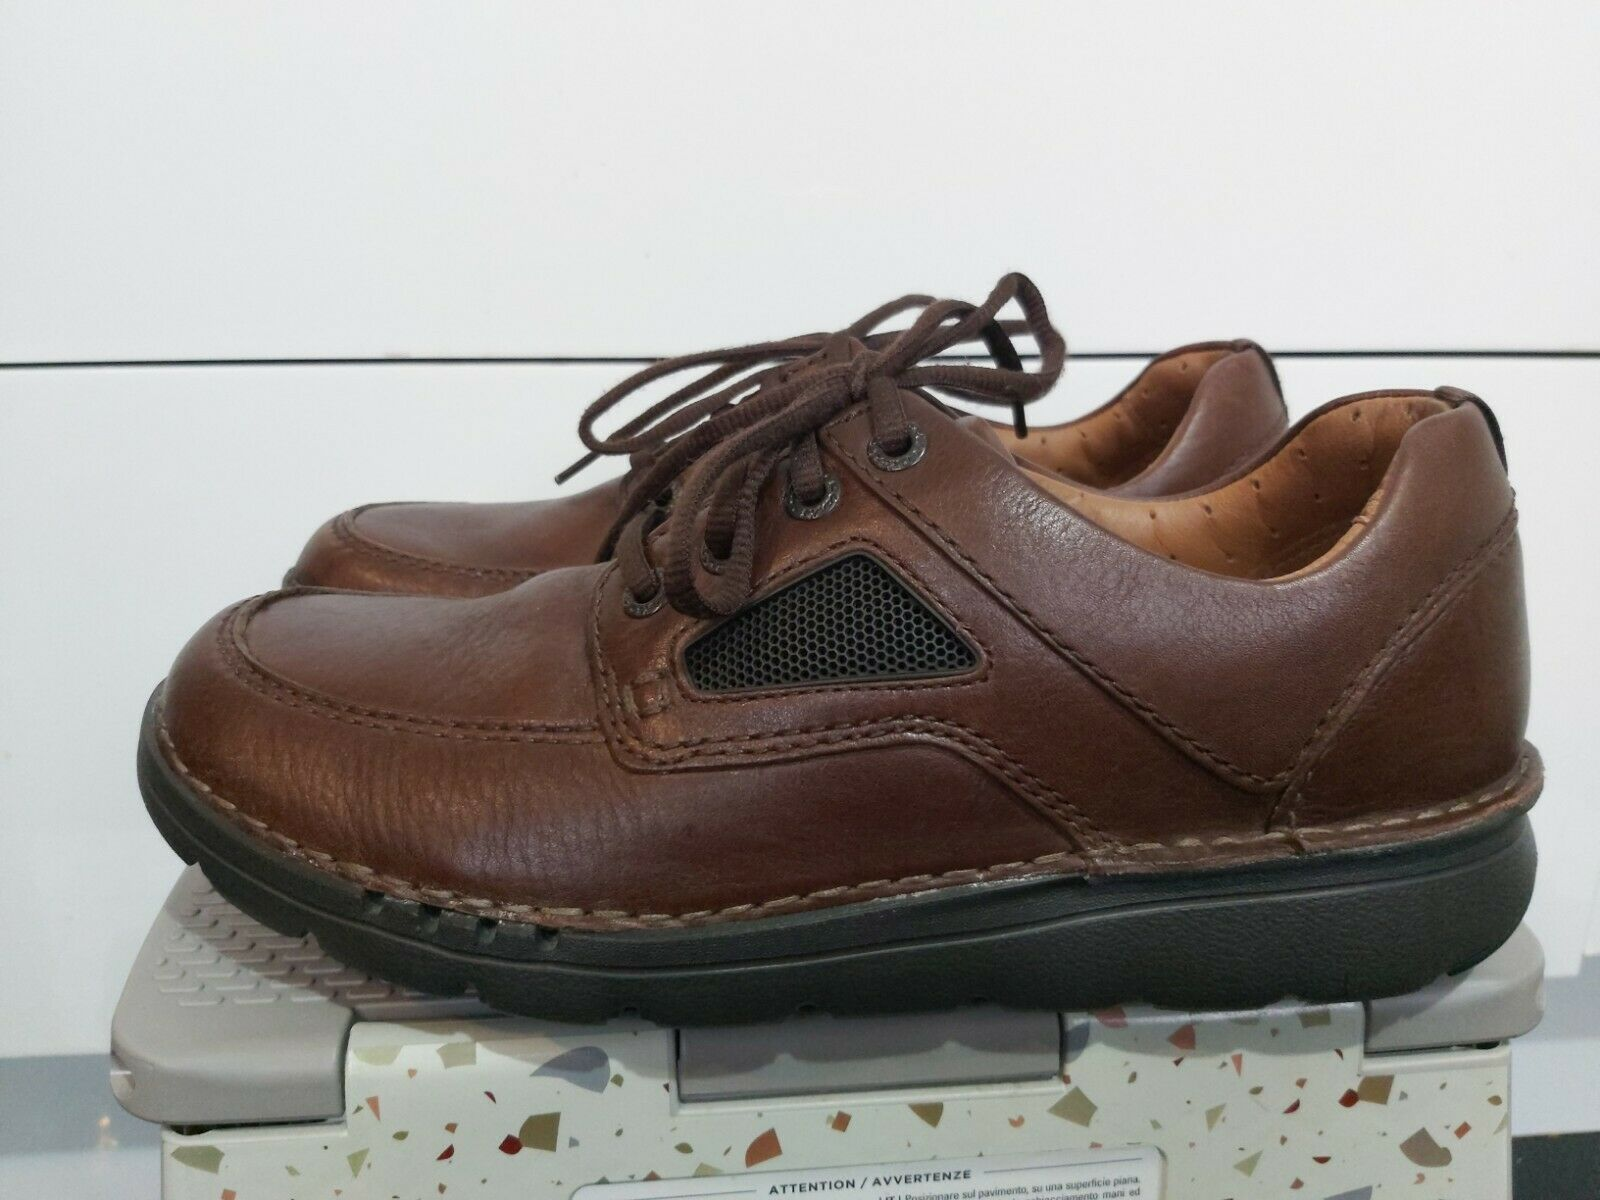 Clarks unstructured mens Comfort shoes Leather Brown UK 8.5 G